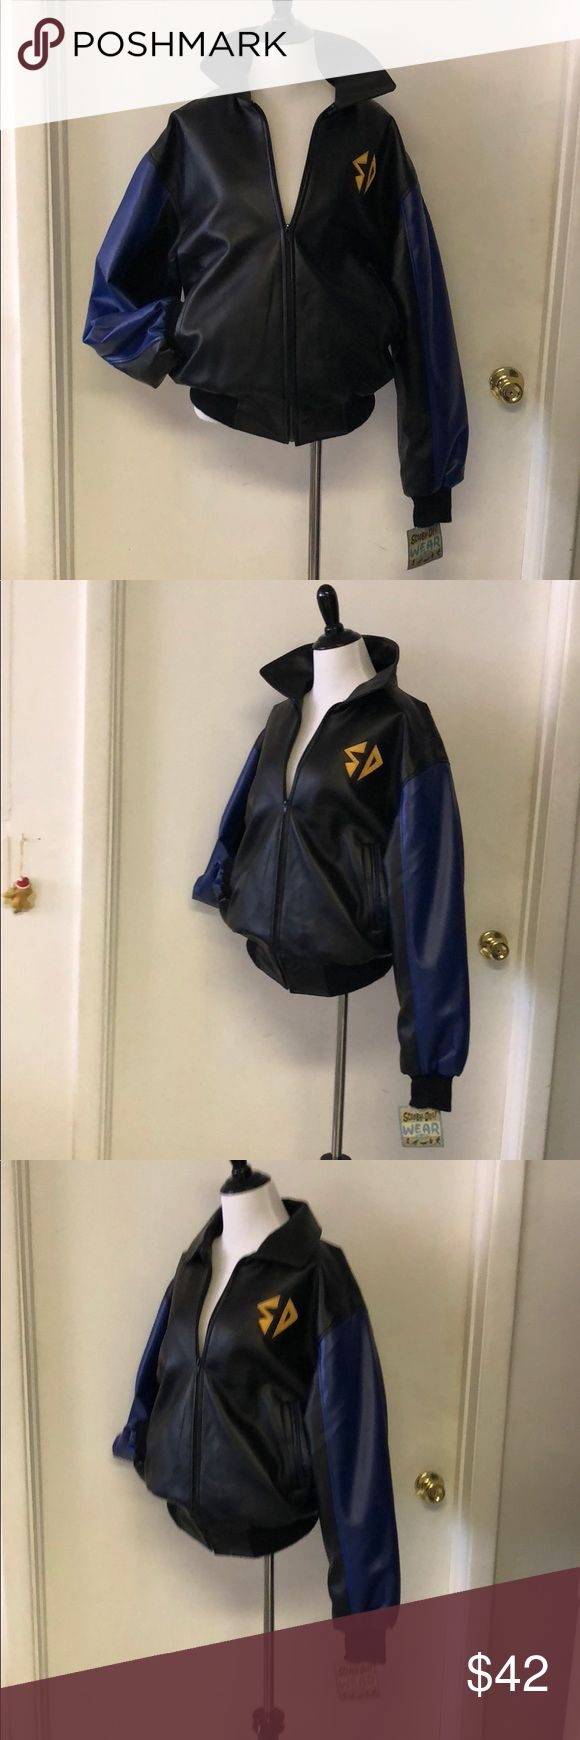 Authentic Cartoon Network Scooby-Doo jacket M Authentic Cartoon Network Scooby-Doo jacket. Great for the Scooby-Doo lover in you or for someone you know! New with tags and never worn. cartoon network Jackets & Coats